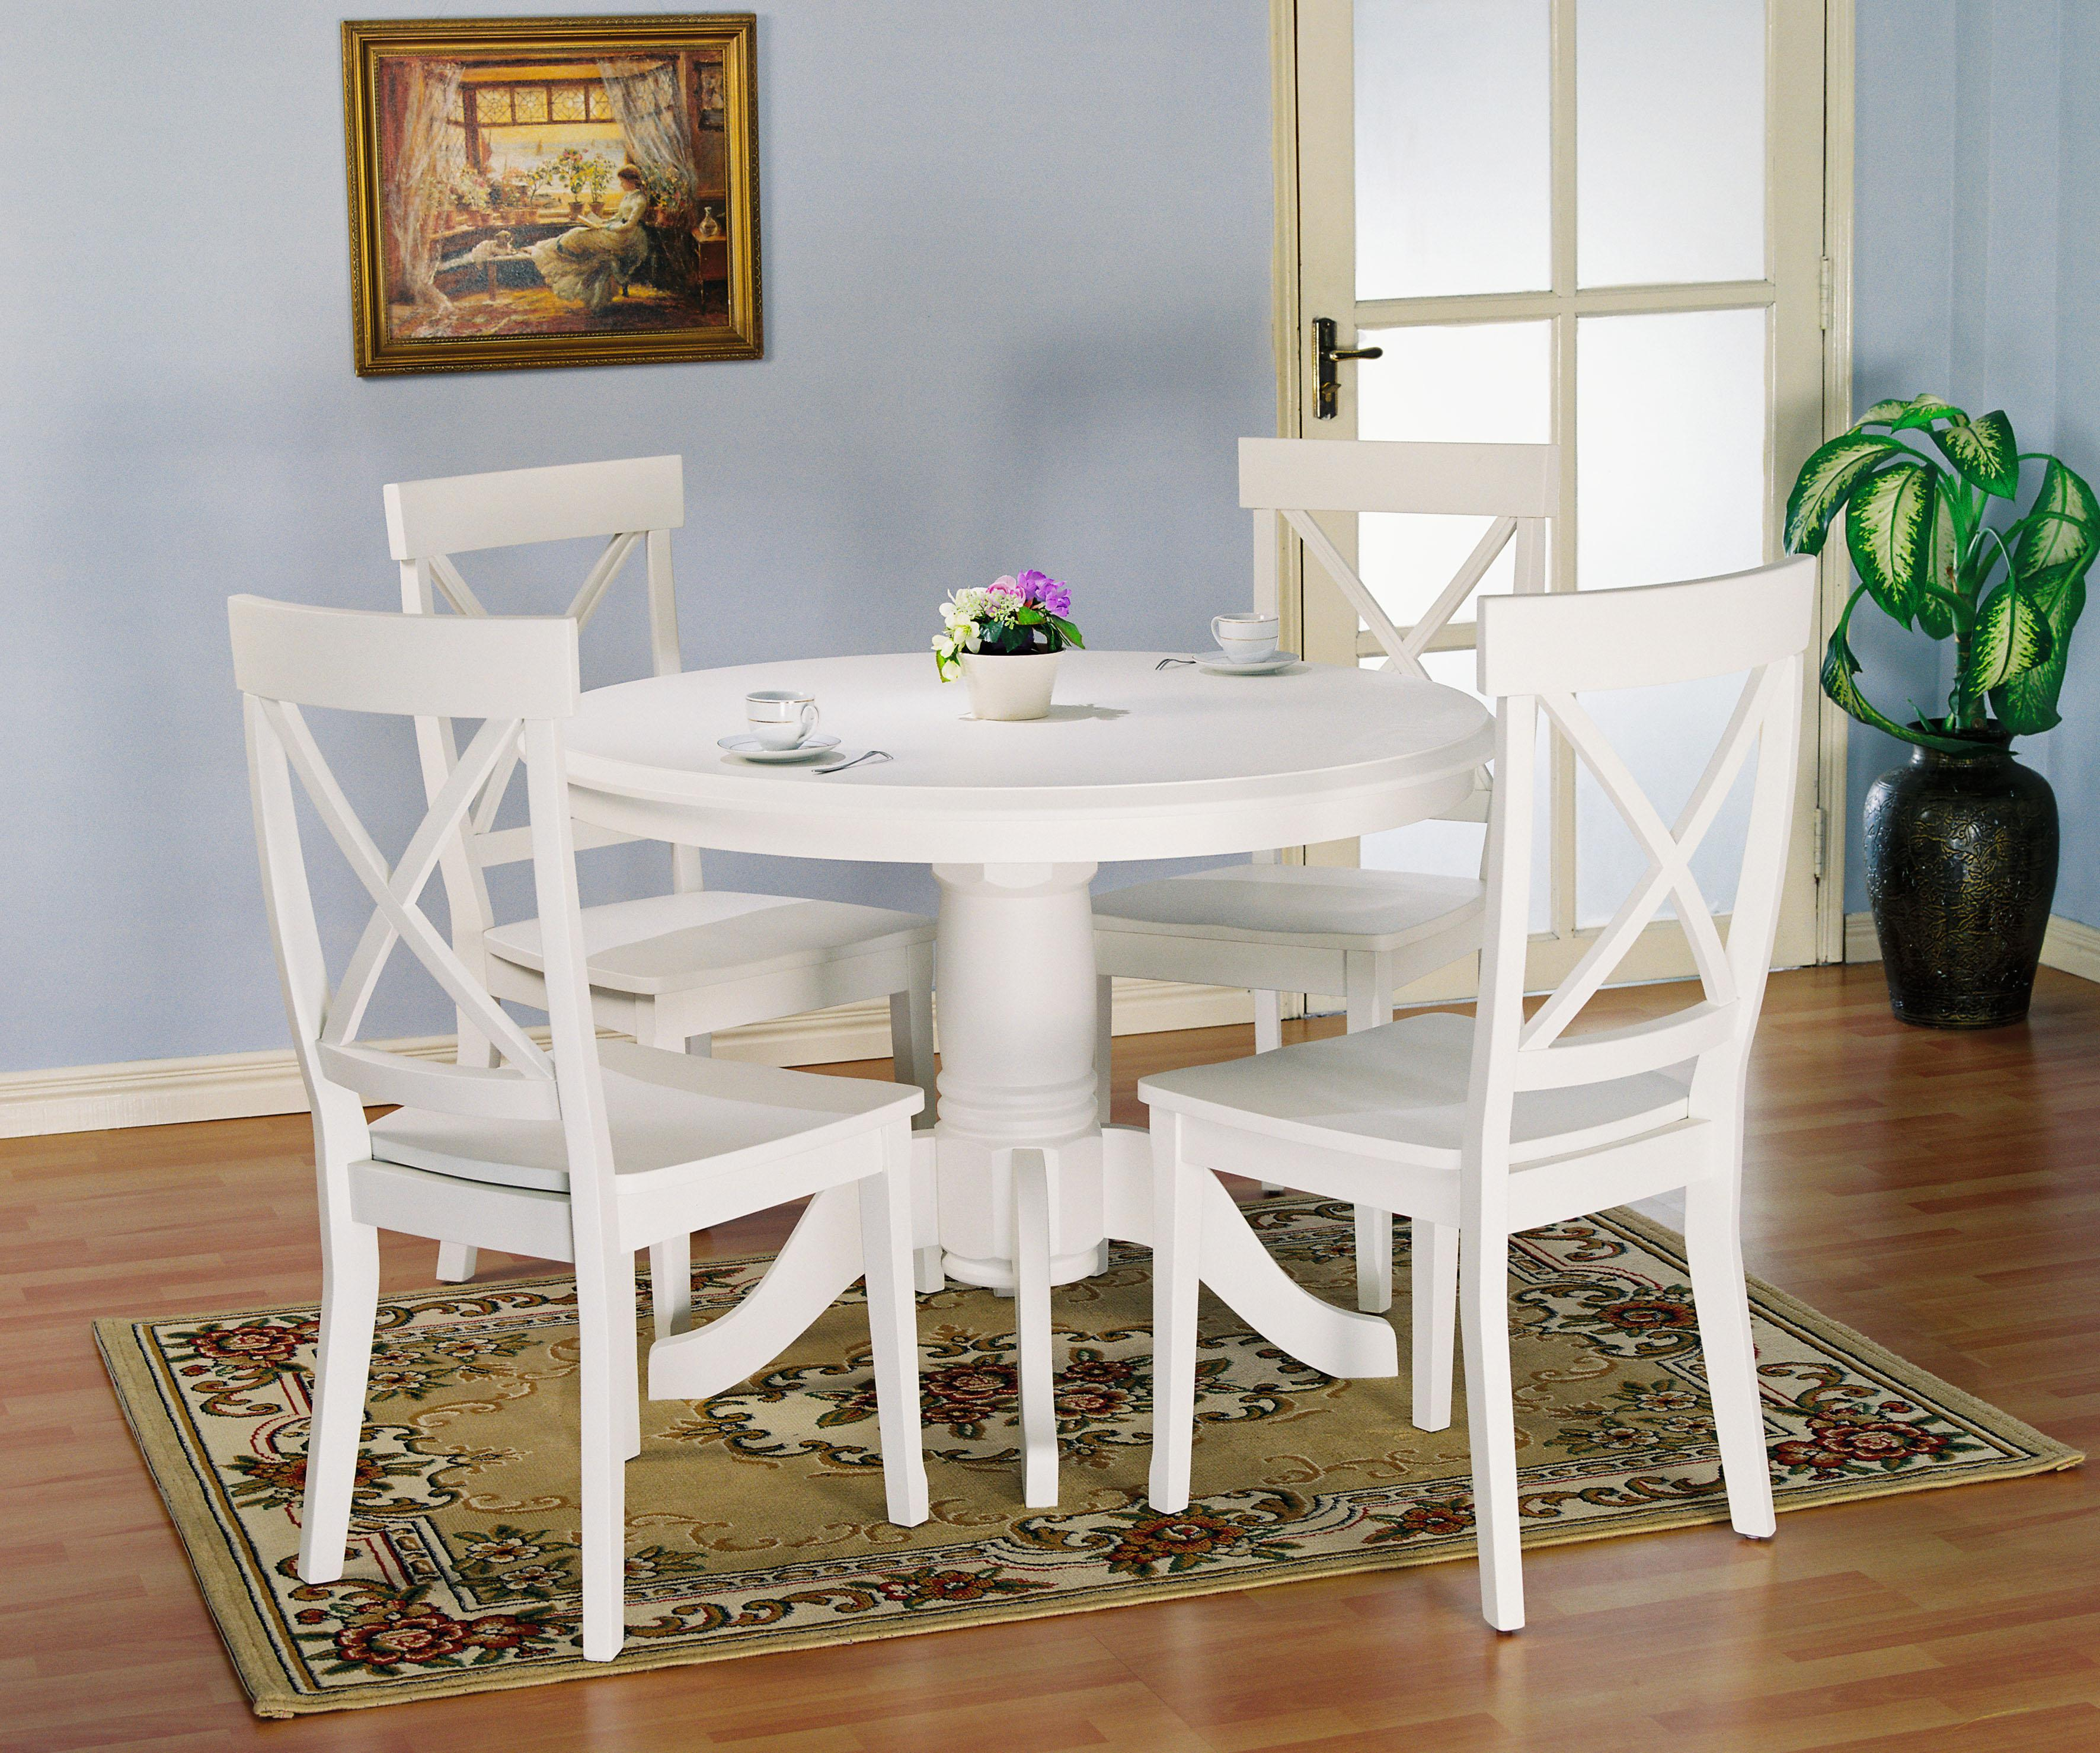 table round dining collections set crown item furniture finish piece in wood chair gray room kcl wayside blake with and sets mark